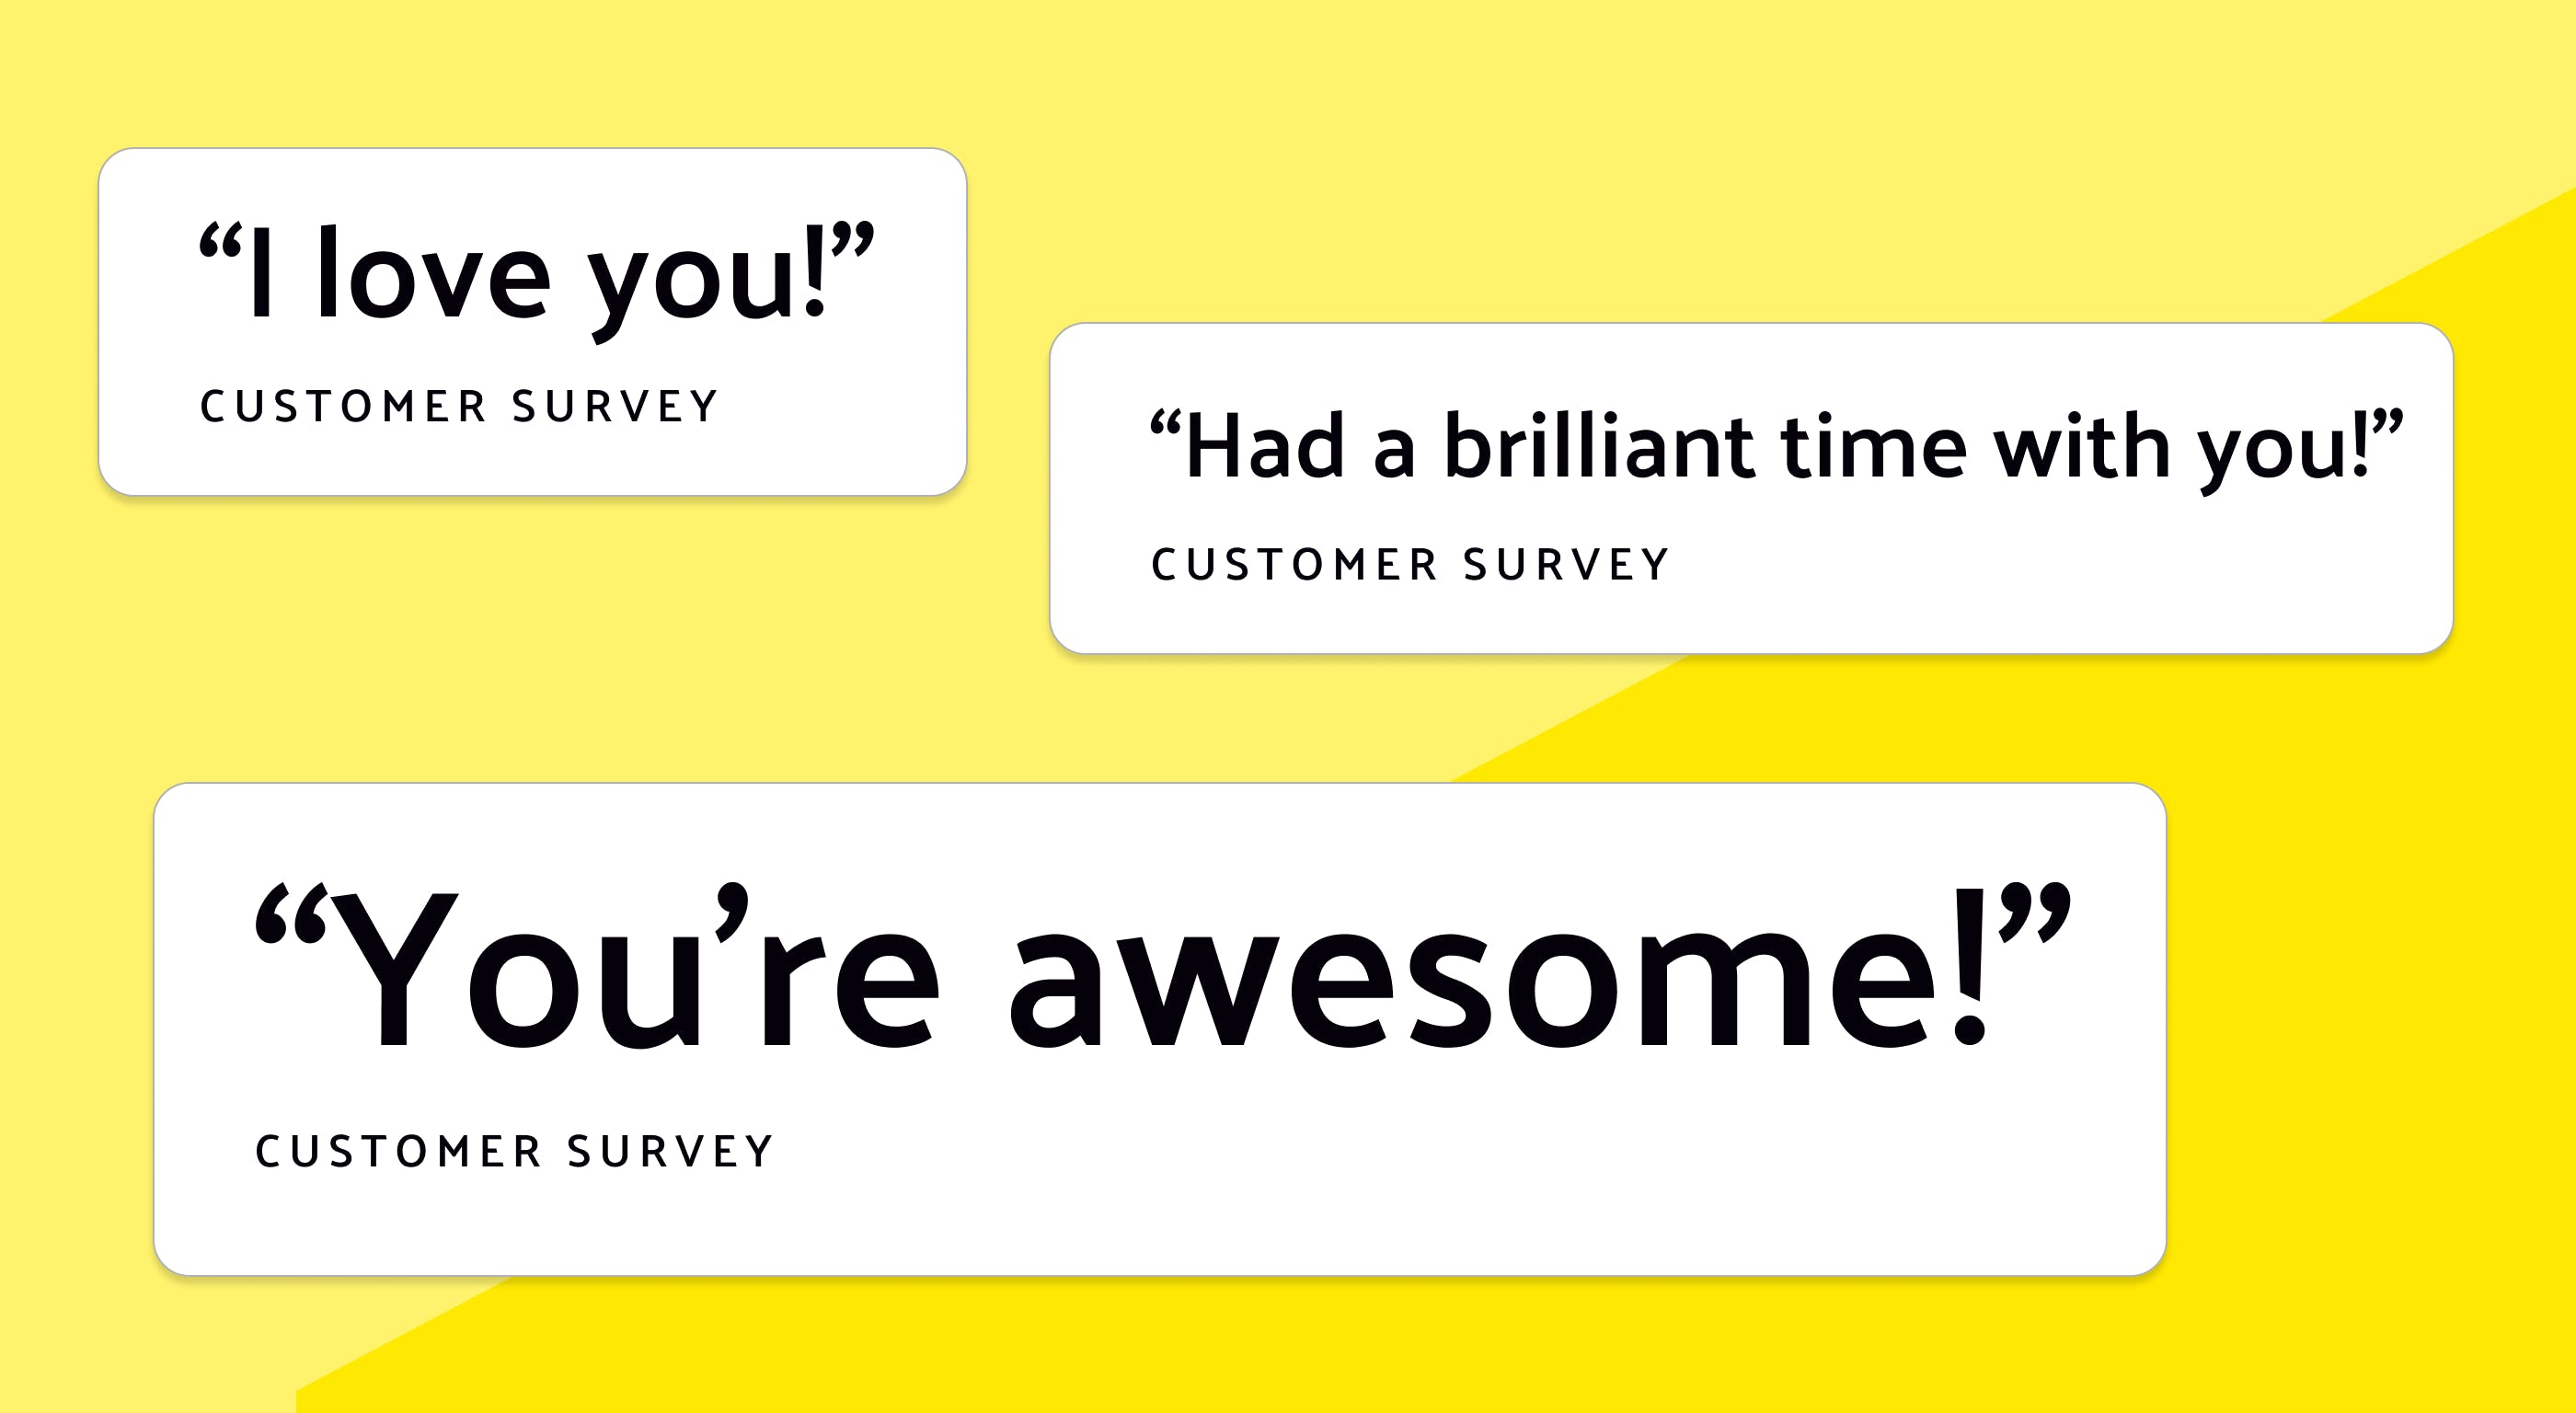 """Three quotes from customer surveys: 1) """"I love you!""""; 2) """"Had a brilliant time with you!"""" and 3) """"You're awesome!"""""""